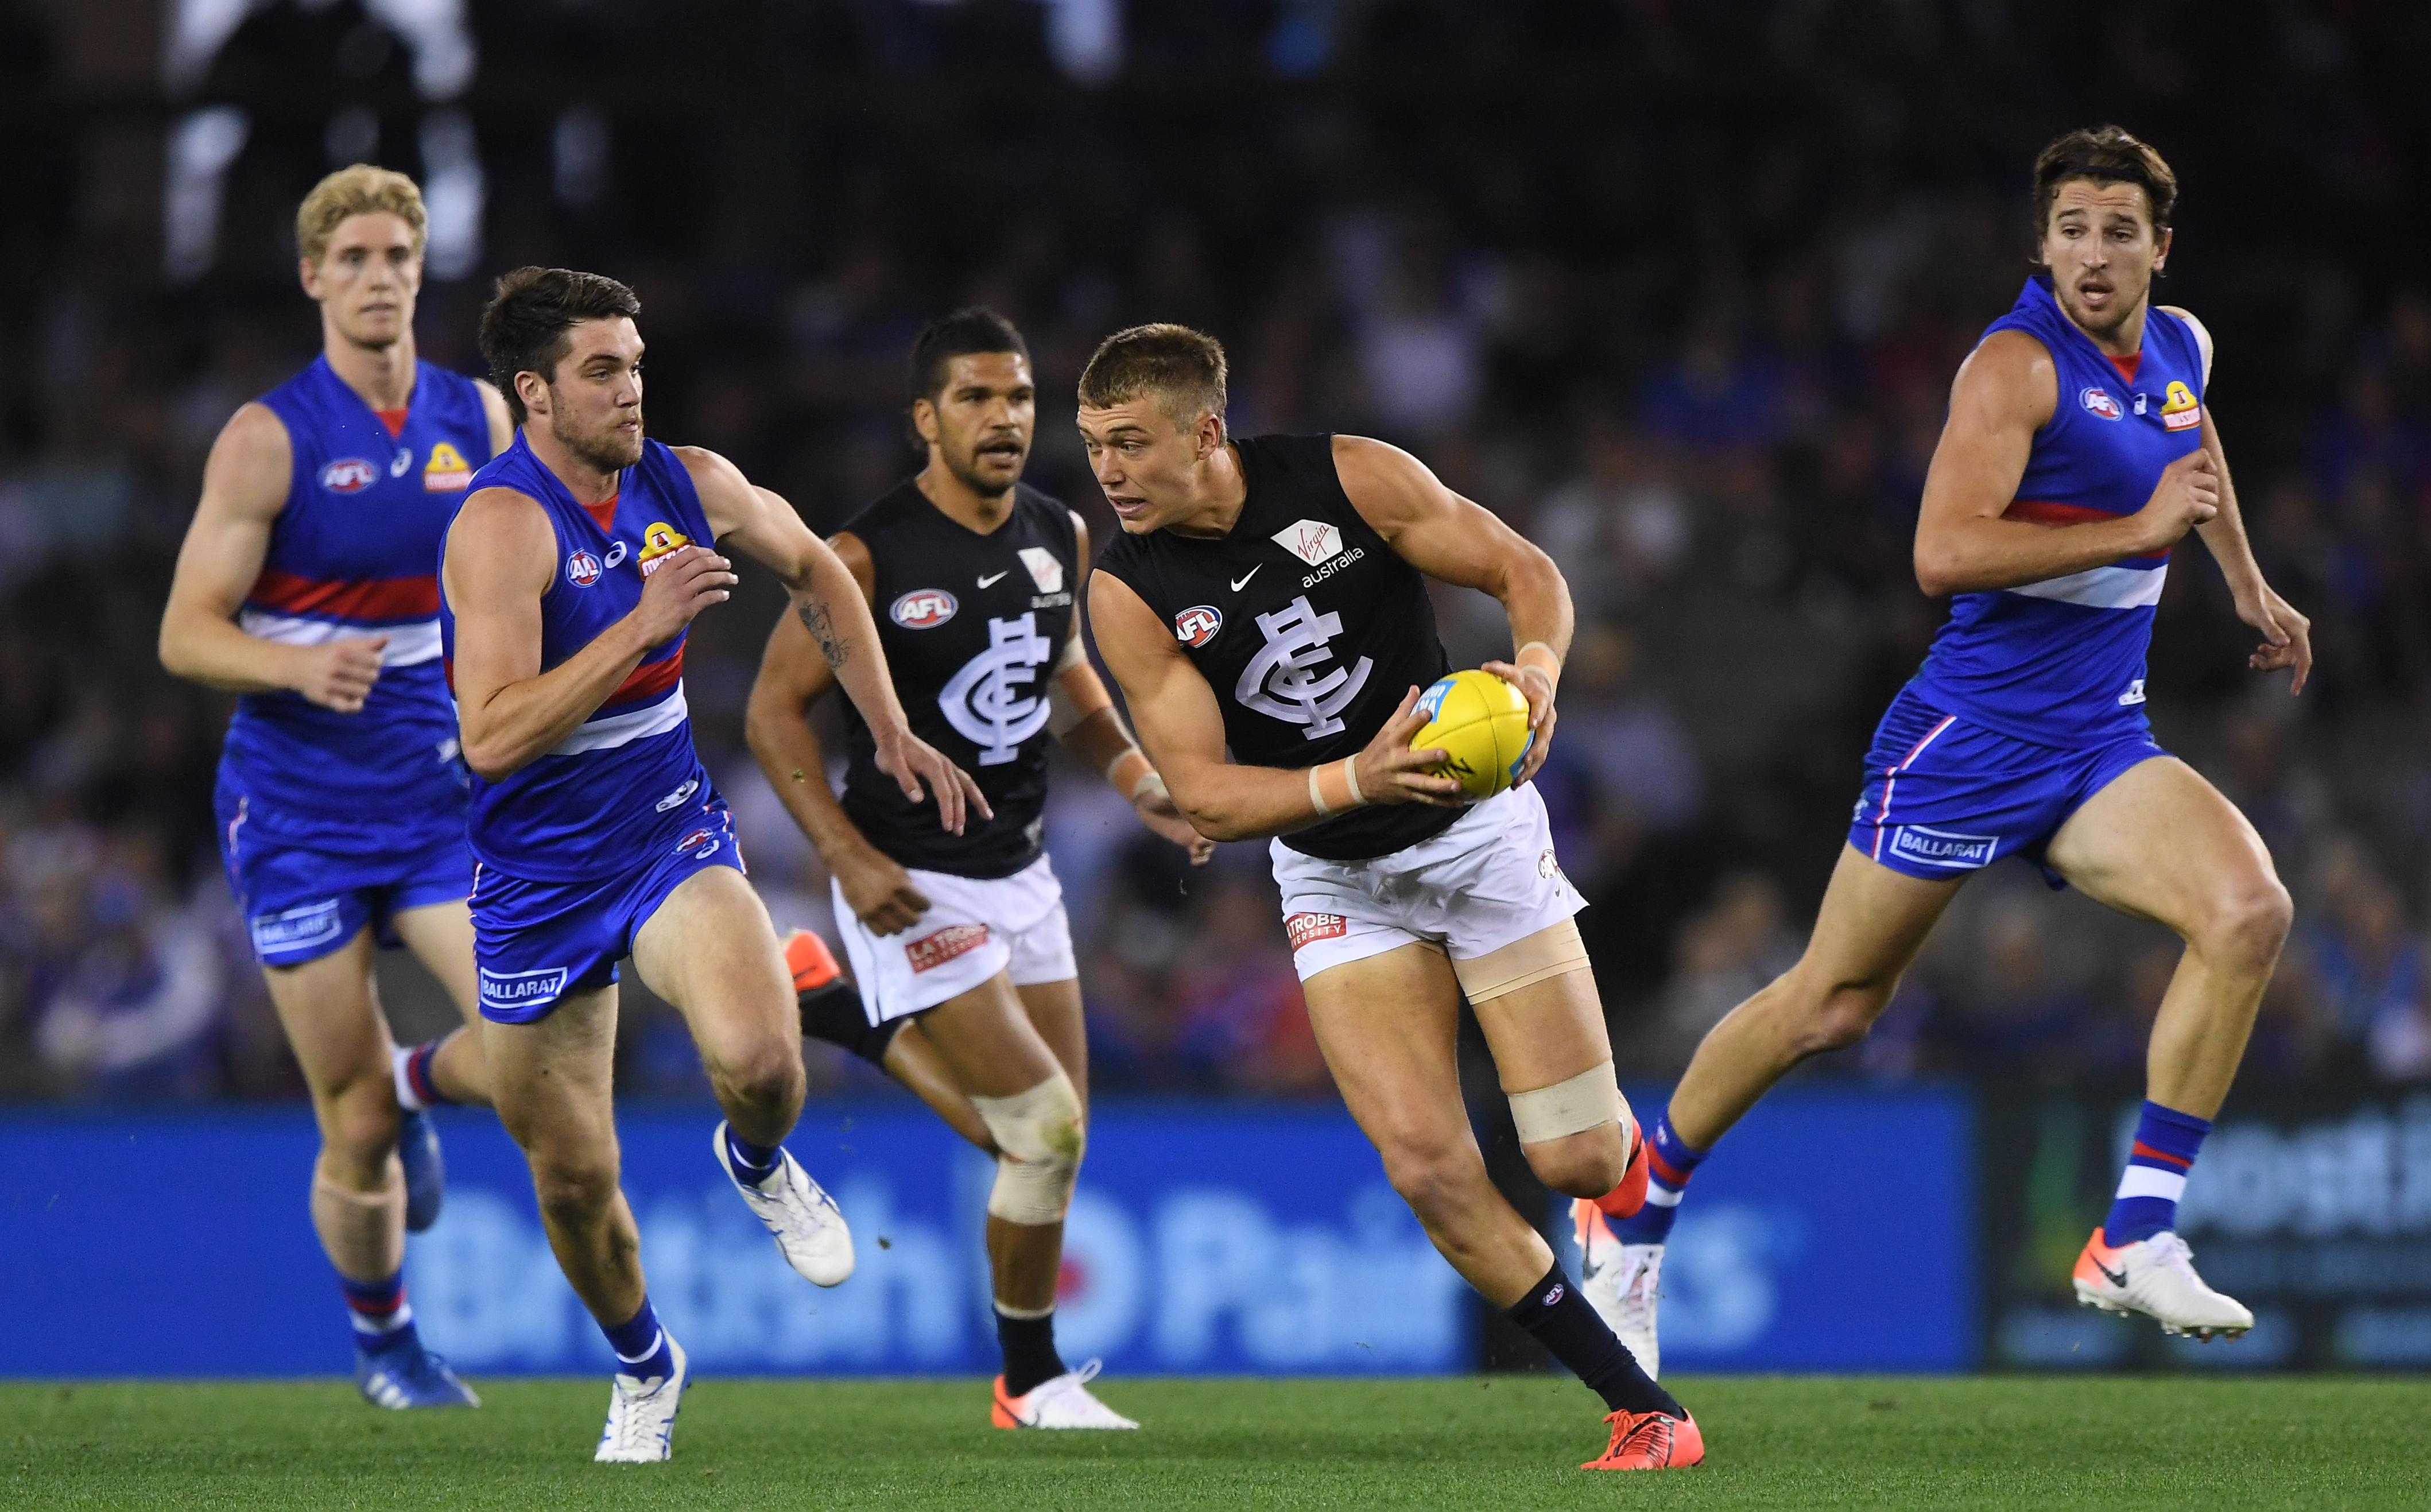 Carlton claims first win of the season (and snaps a streak in the process!)